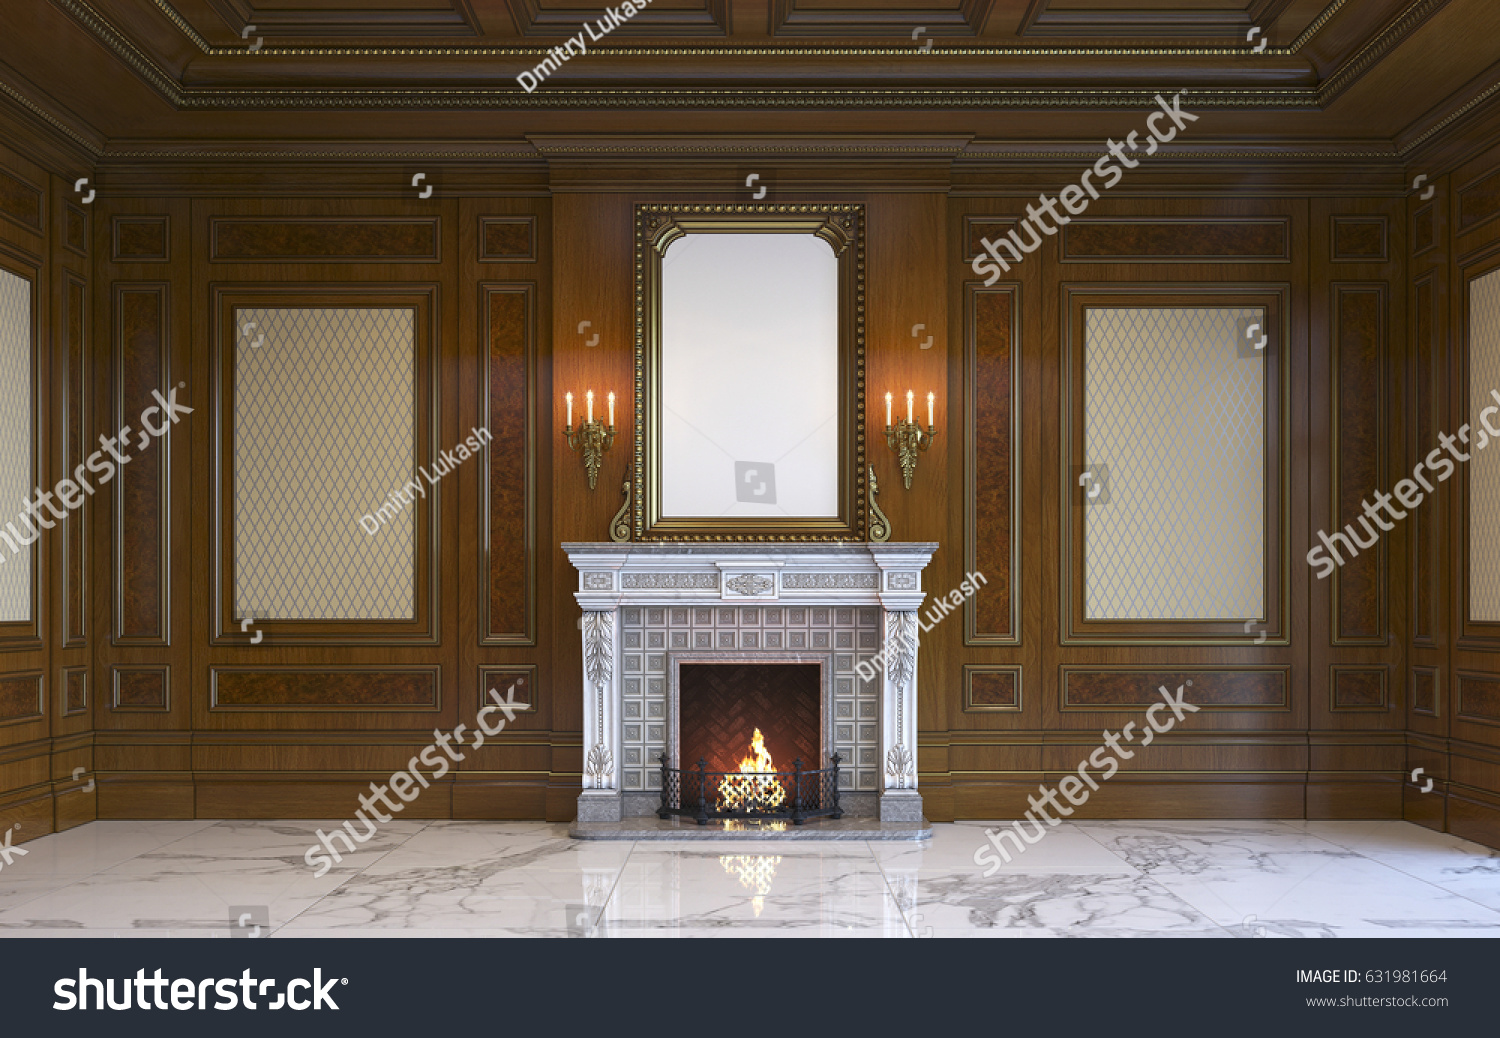 Classic Interior Wood Paneling Picture Frame Stock Illustration ...